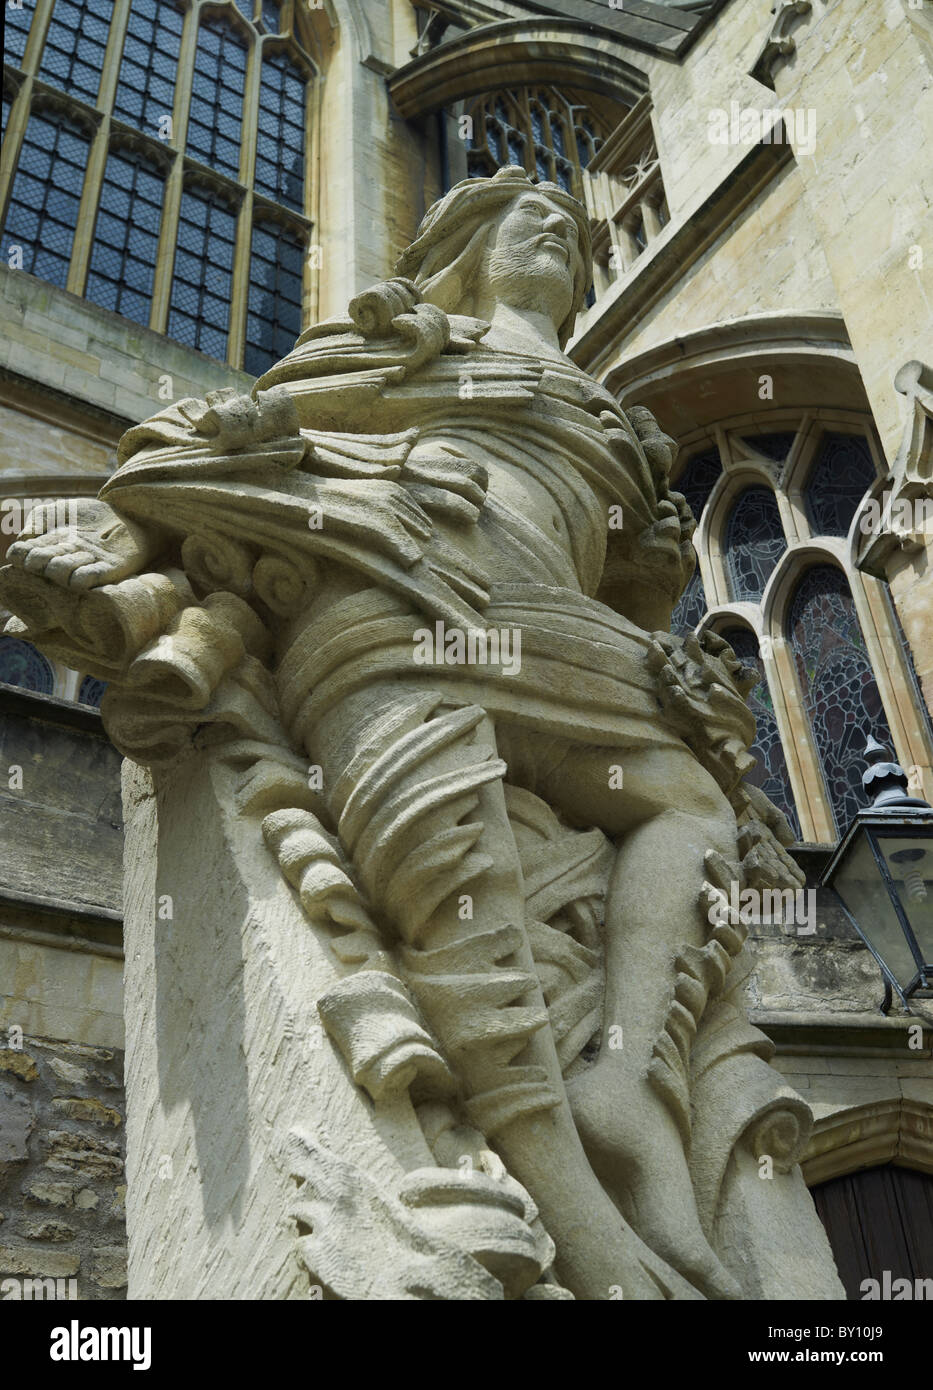 Bath Abbey, Somerset, statue of risen Christ, 2000, by local sculptor Laurence Tindall - Stock Image